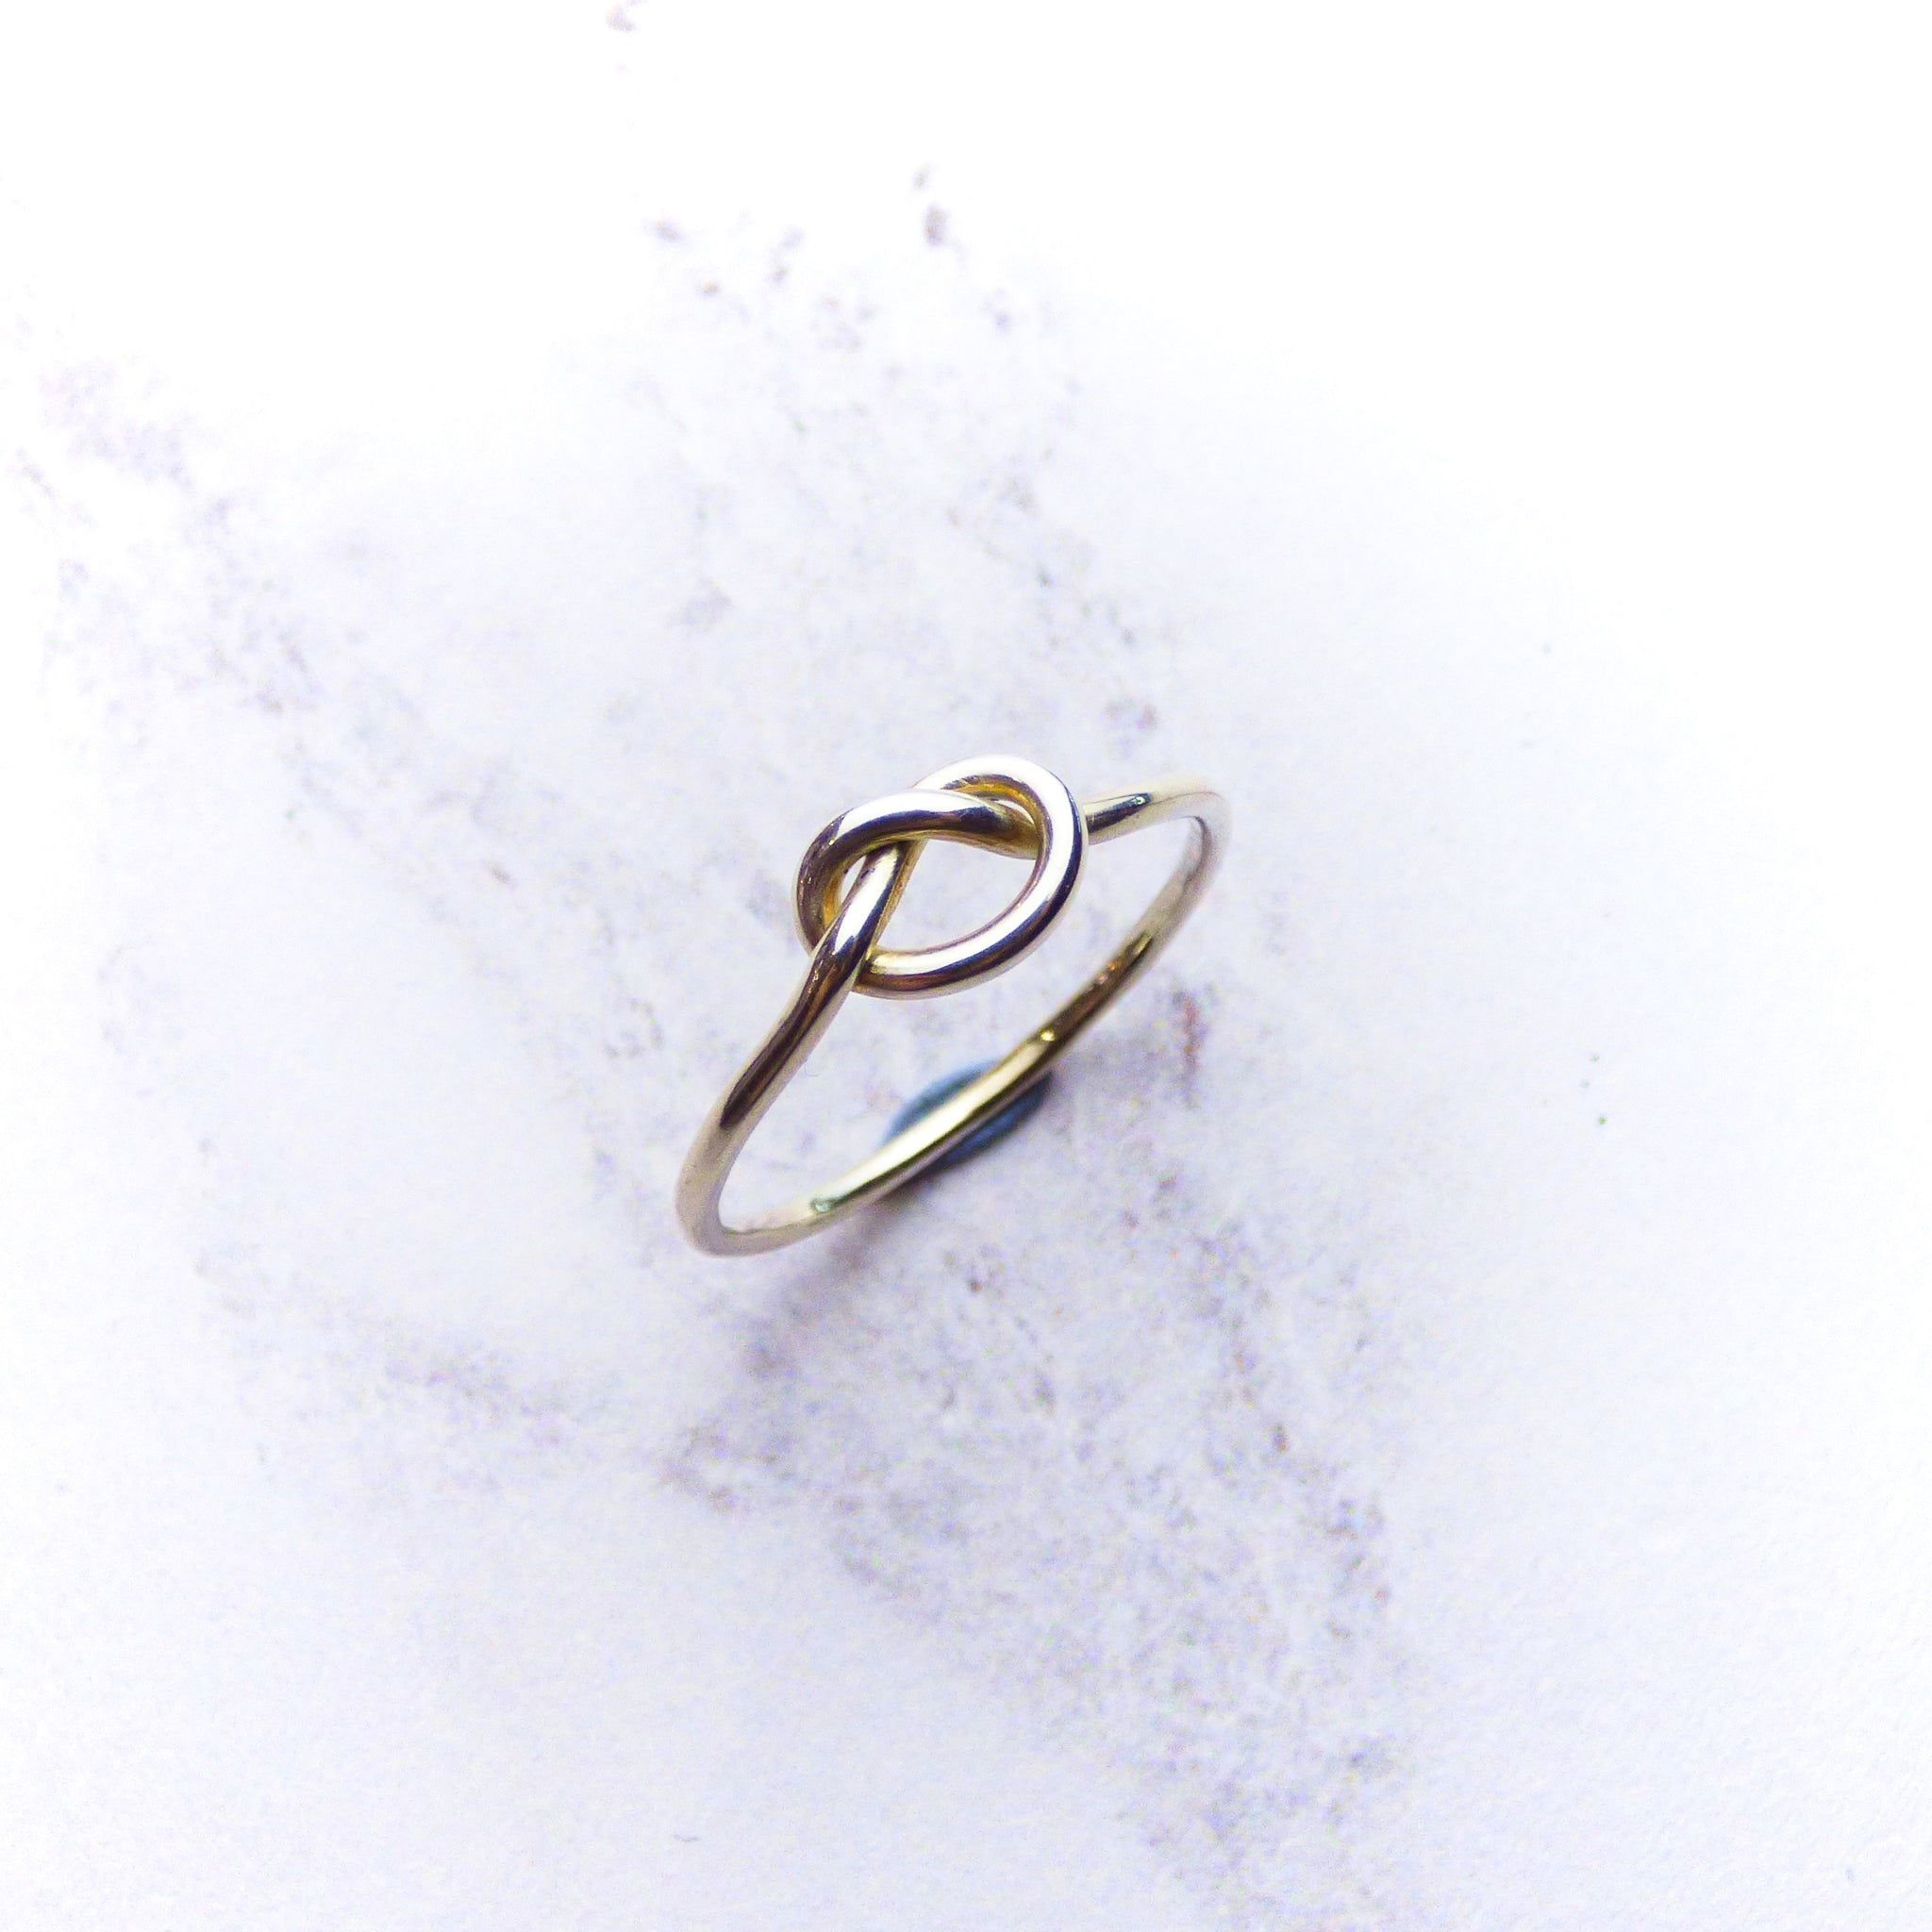 9ct White Gold Knot Ring Kirsty Taylor Goldsmiths